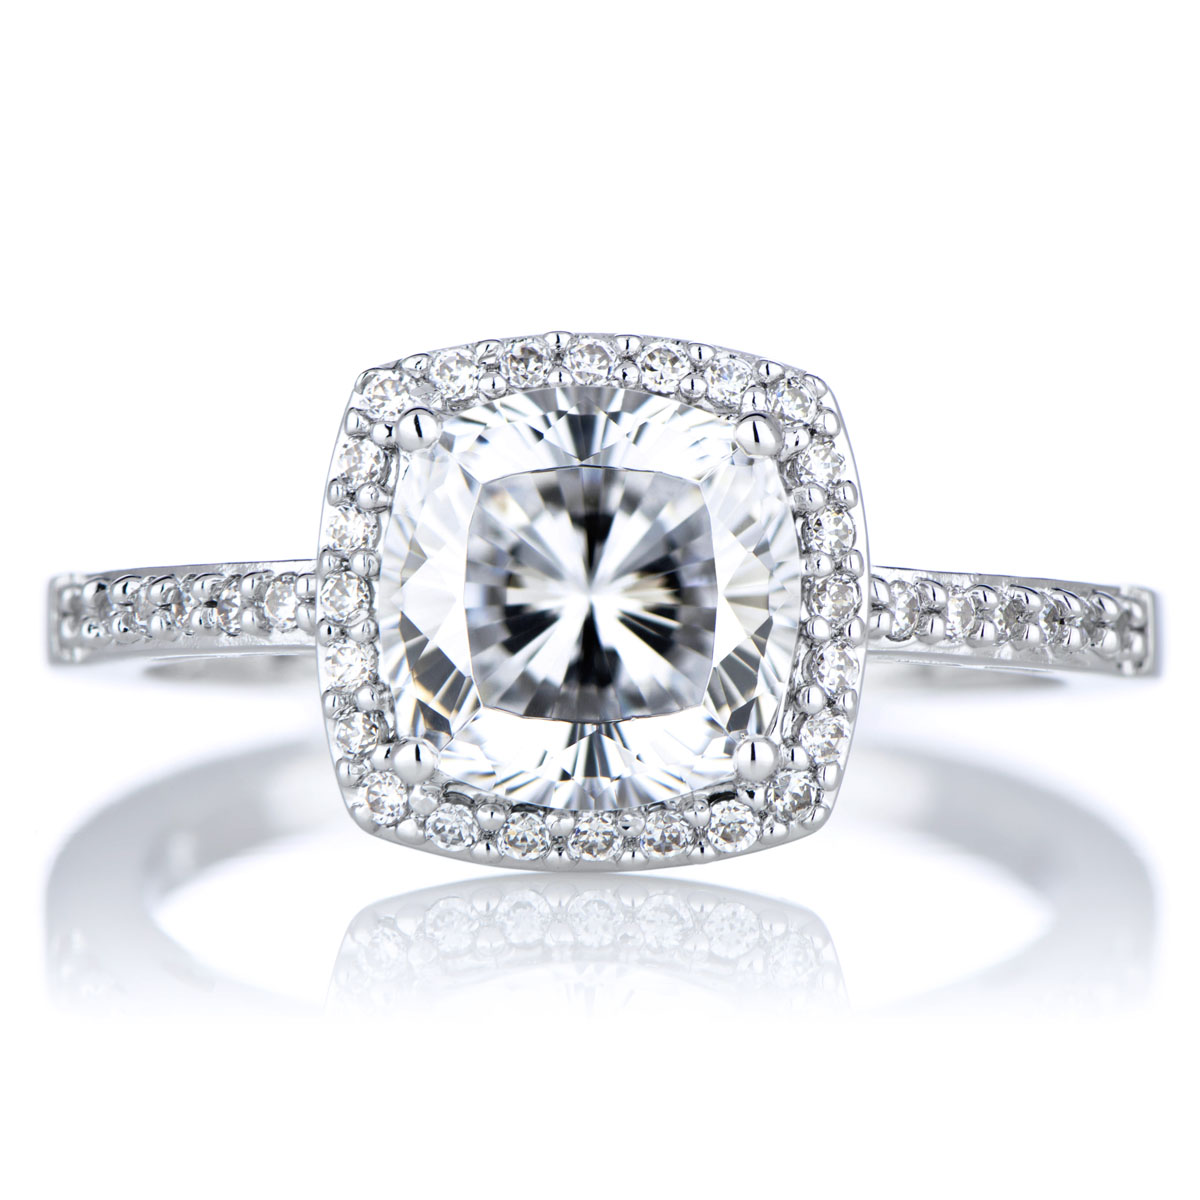 sheryls 25 ct cushion cut cz engagement ring - Cz Wedding Rings